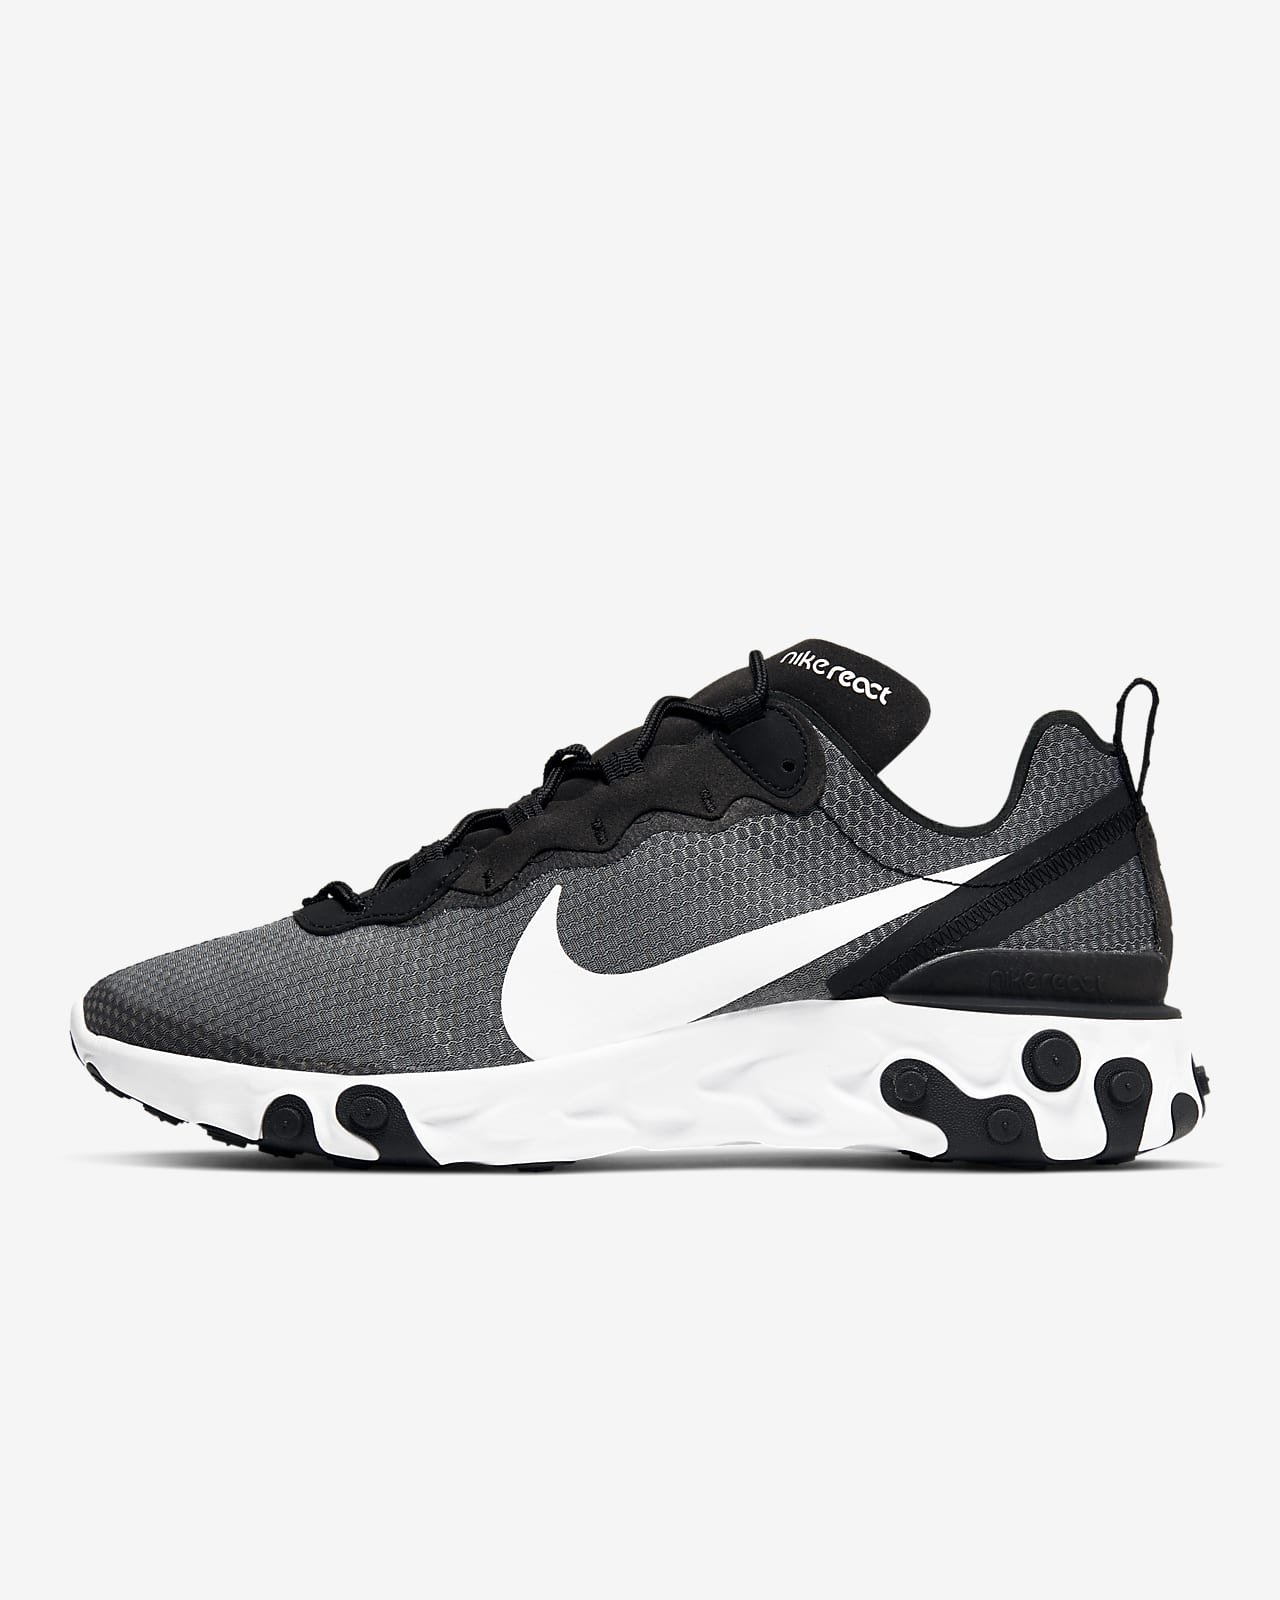 Soldes > chaussure homme nike react > en stock